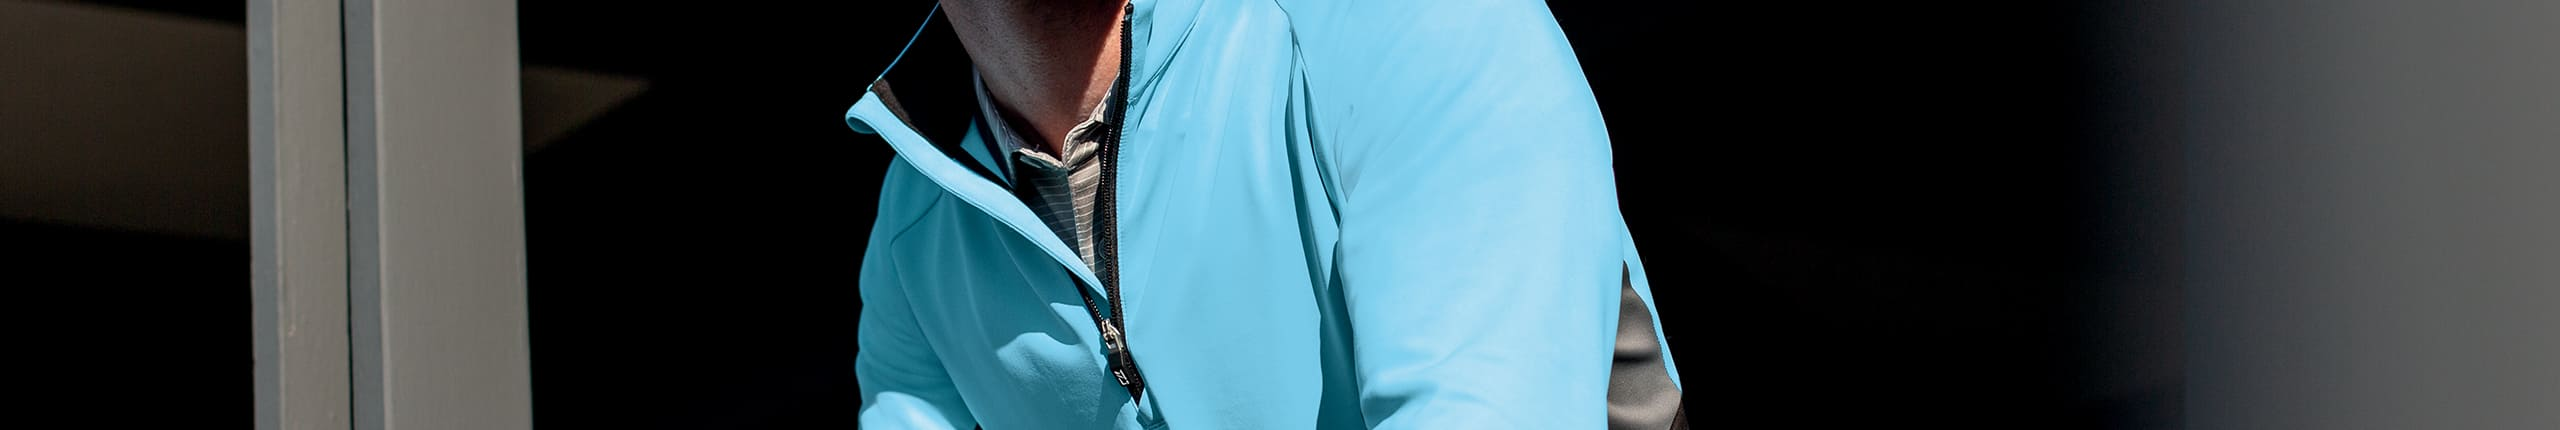 2560x430-subcategory-mens-layers.jpg